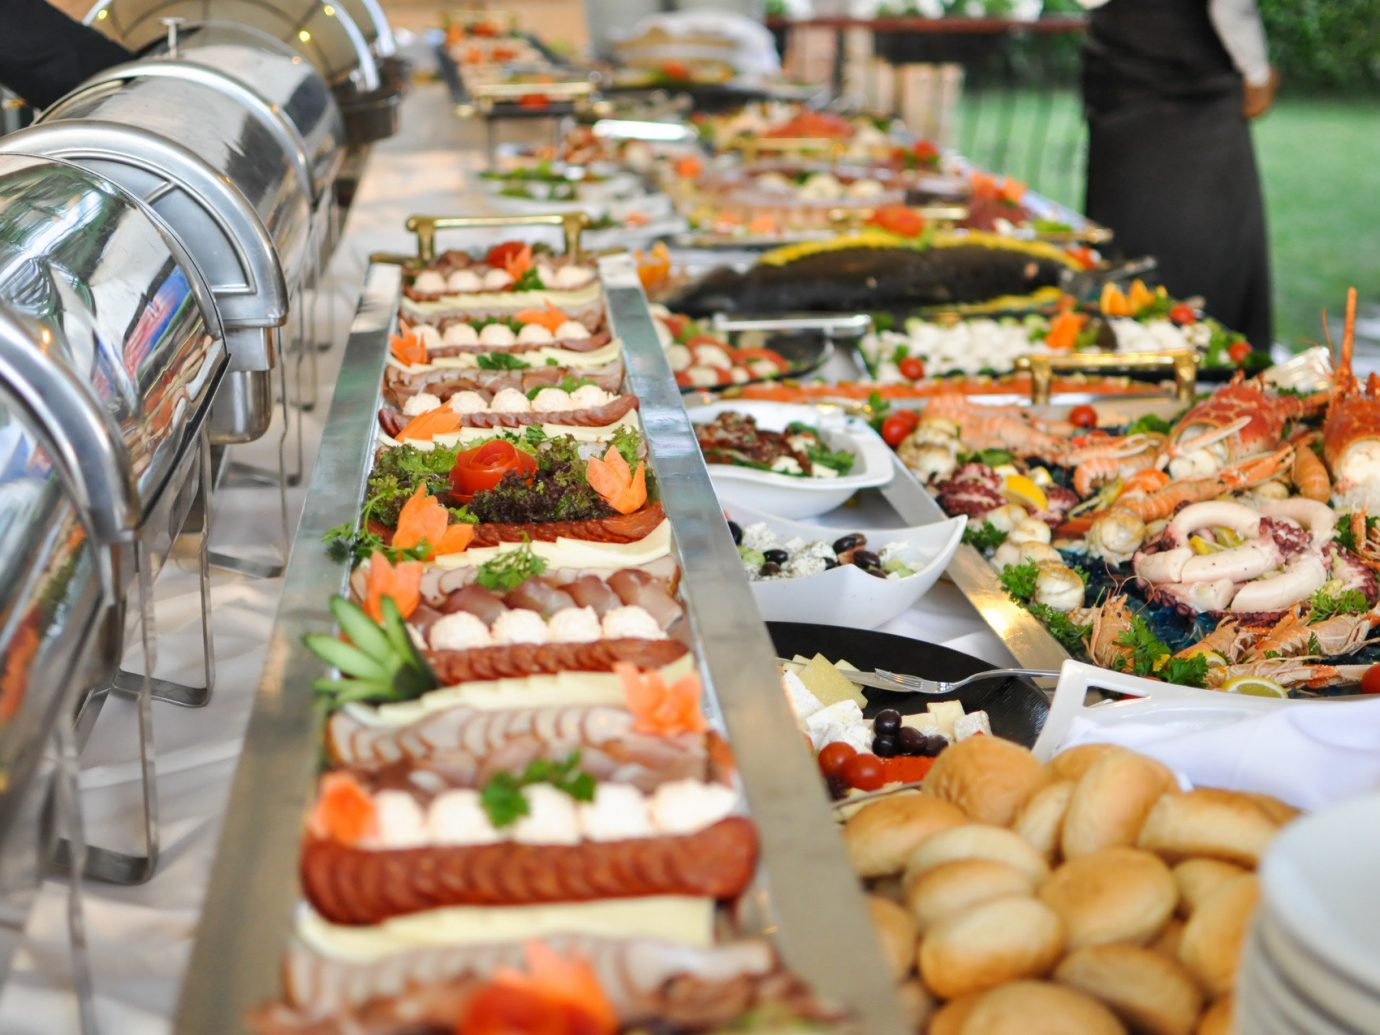 Health + Wellness Travel Tips food meal buffet brunch dish breakfast sense hors d oeuvre cuisine several